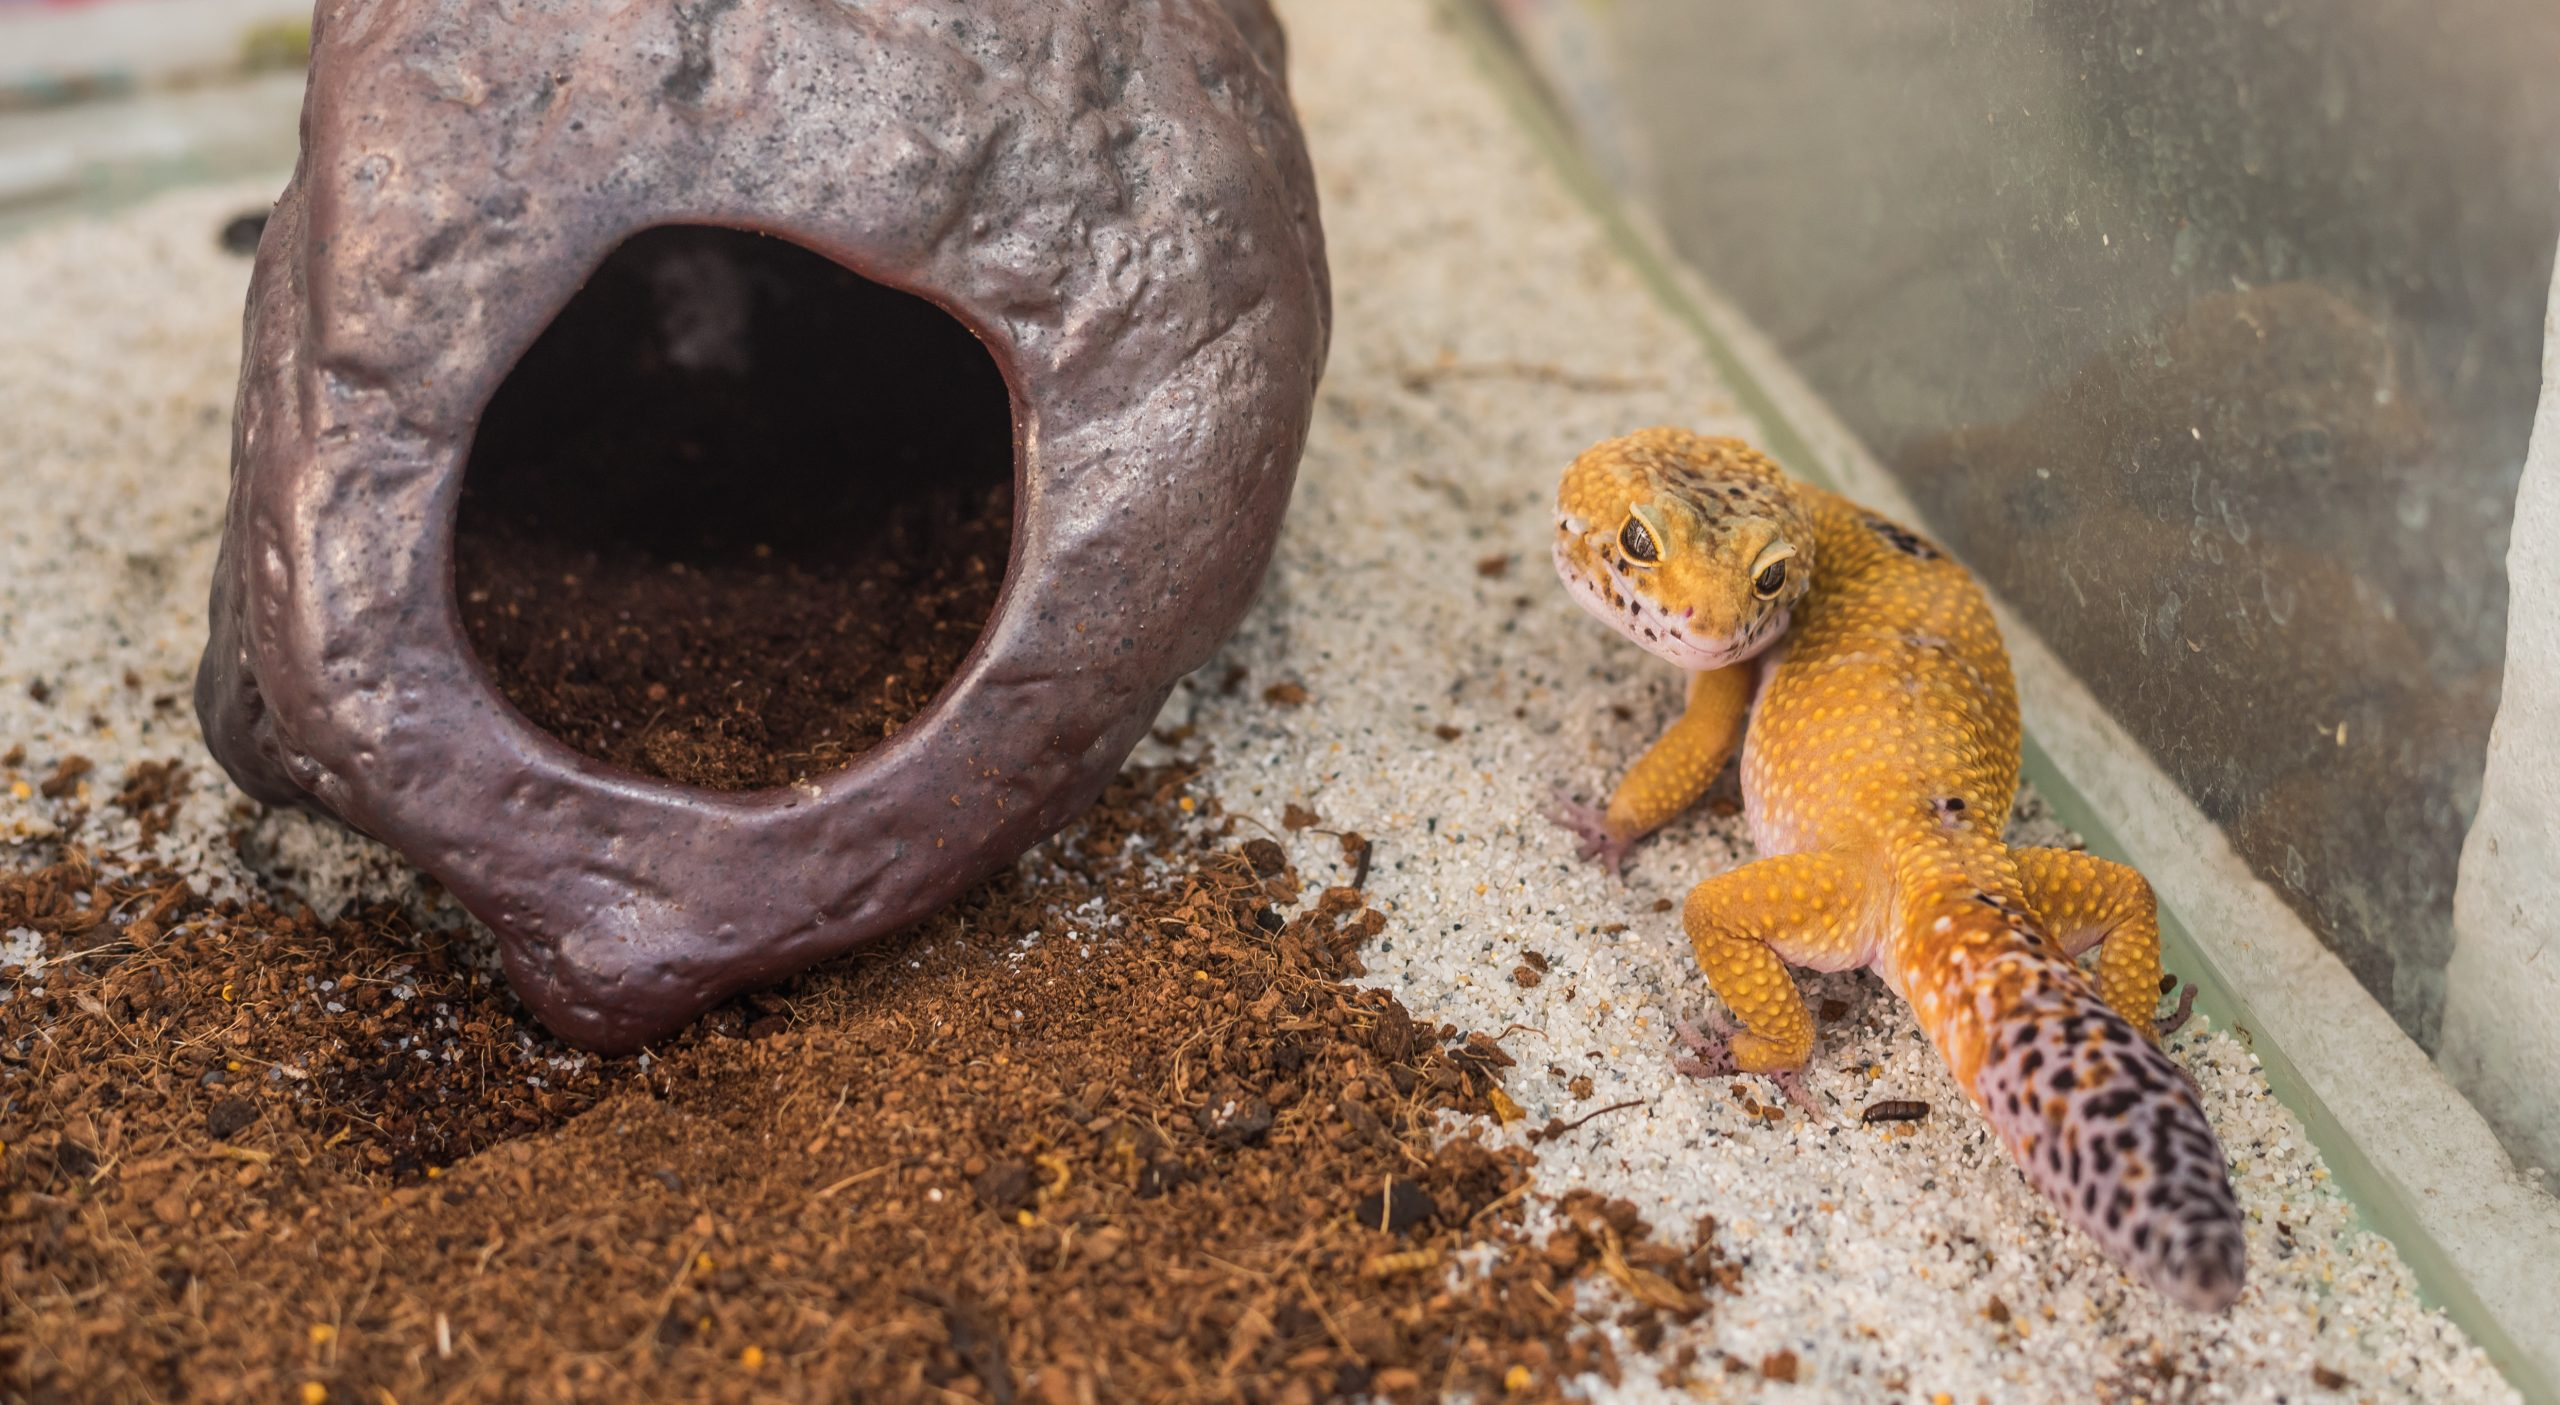 image of leopard gecko (Eublepharis macularius) lizard and hive on sand.